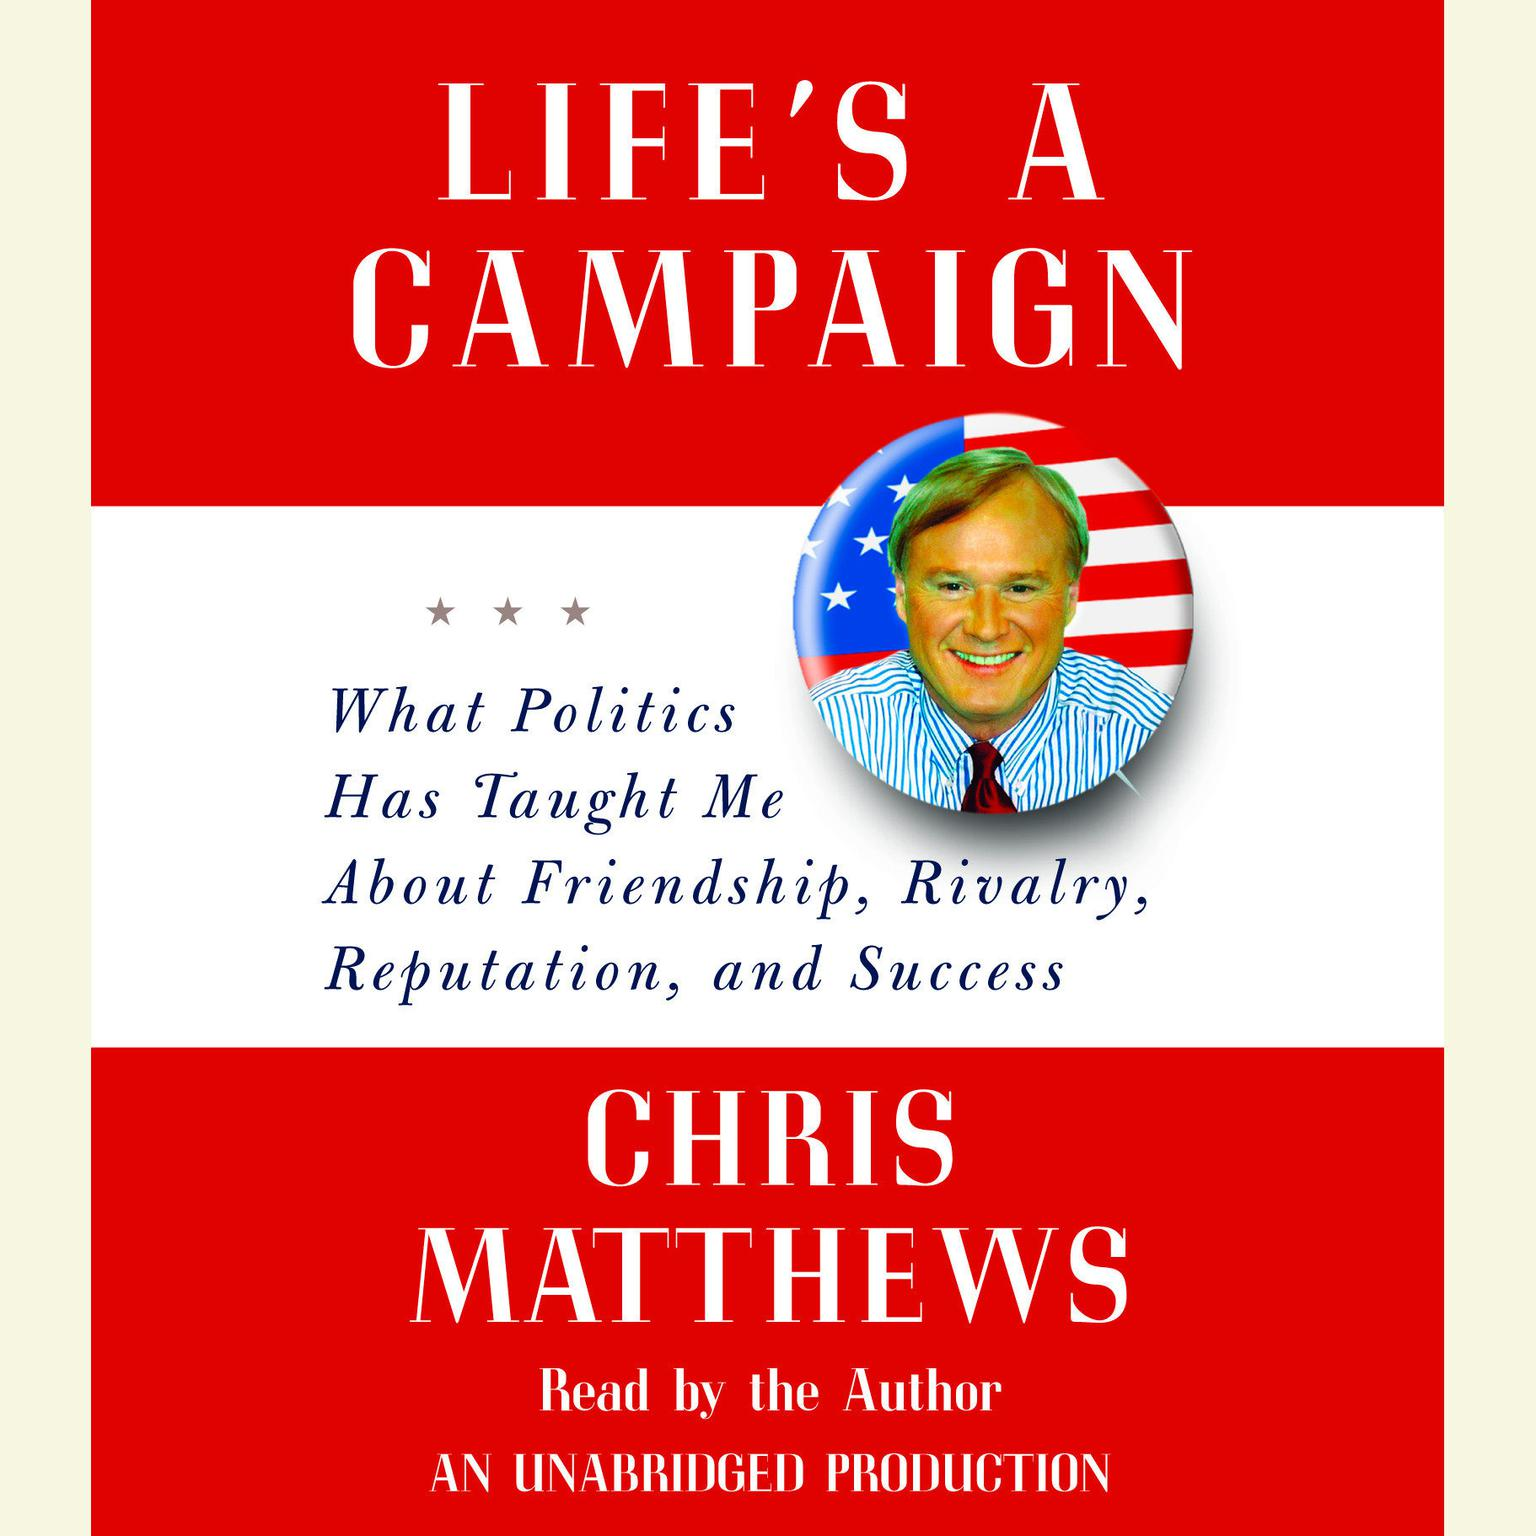 an analysis of politics in hardball a book by chris matthews Like a lot of practitioners of opinion journalism, chris matthews, host of msnbc's weeknight show hardball, has his share of both fans and detractors.